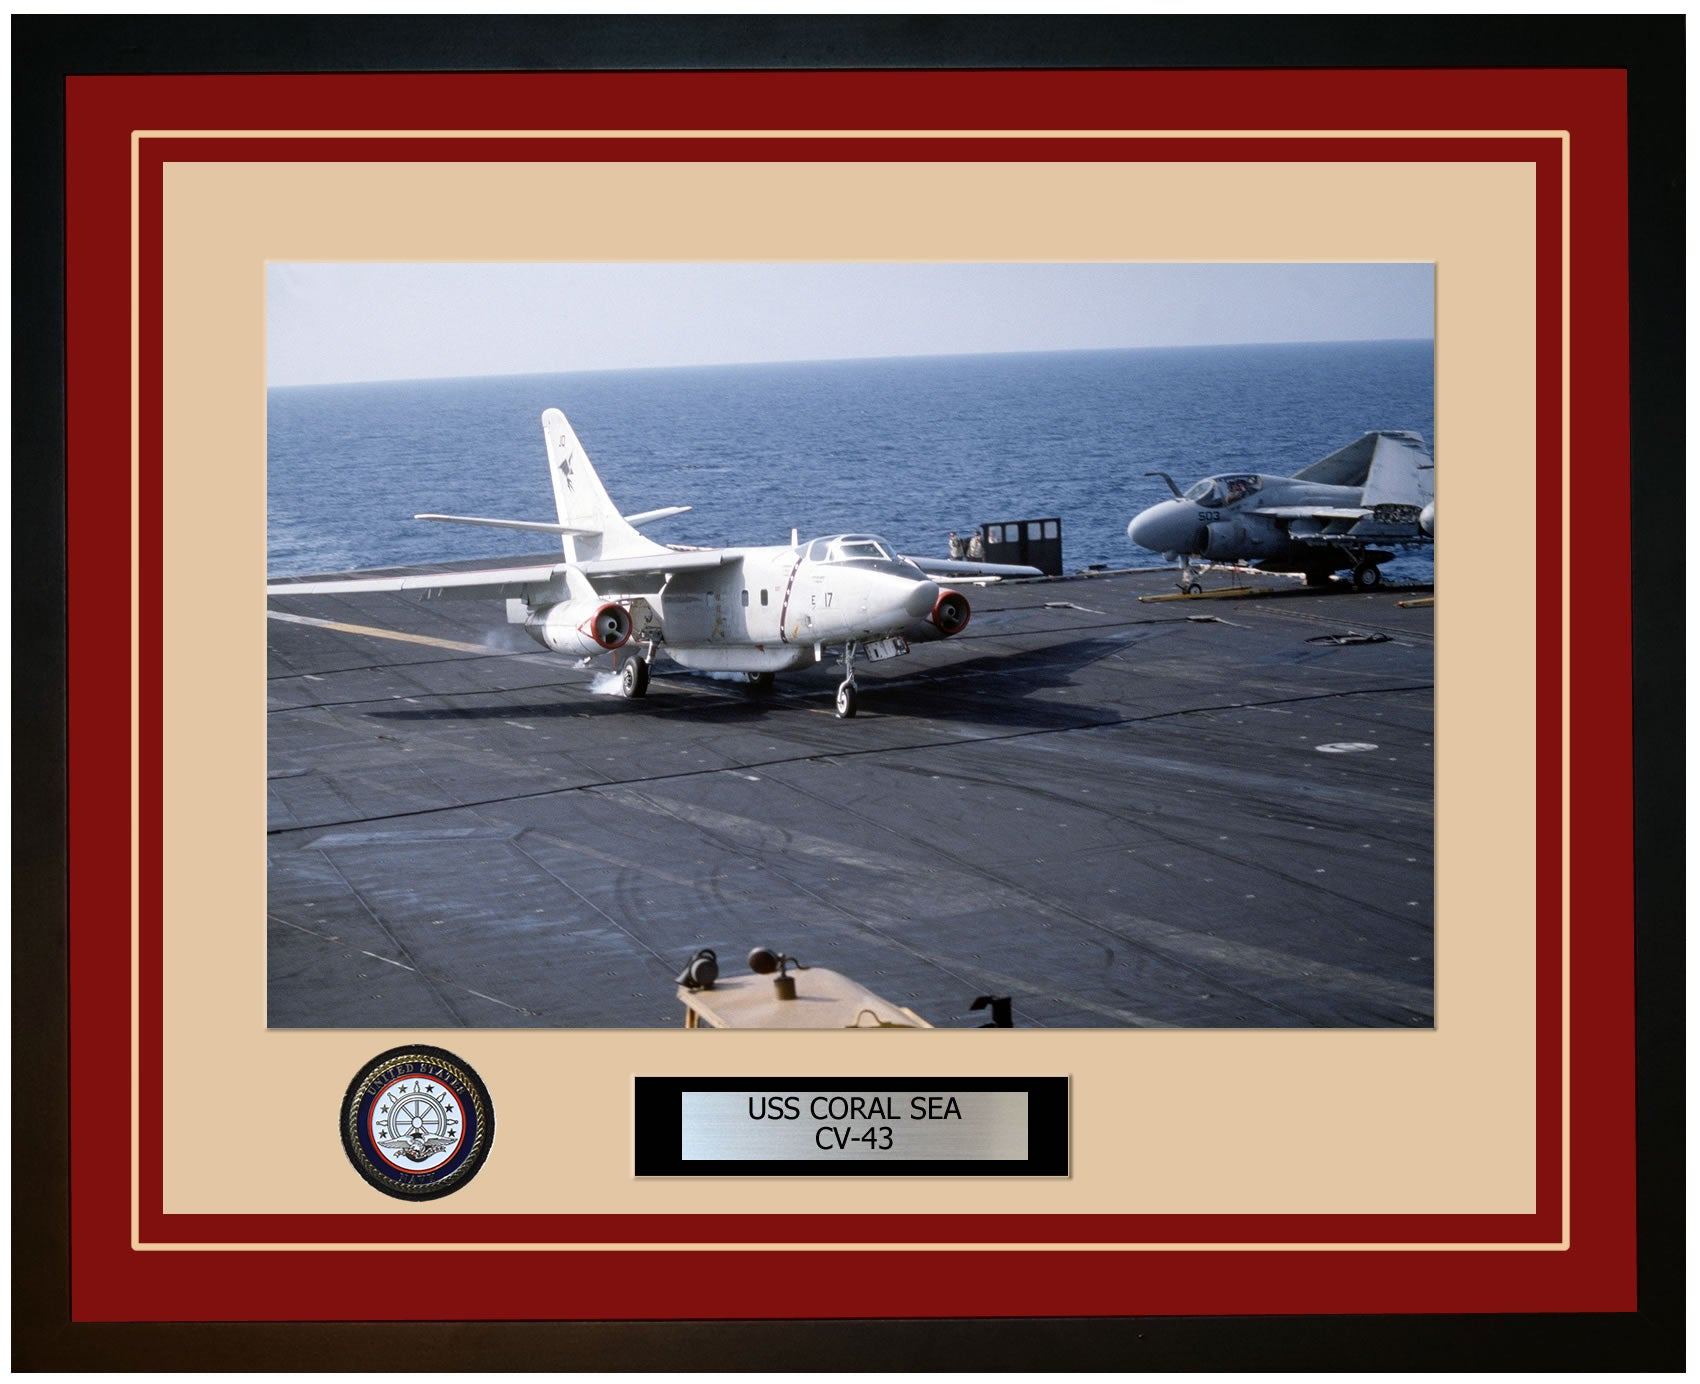 USS CORAL SEA CV-43 Framed Navy Ship Photo Burgundy